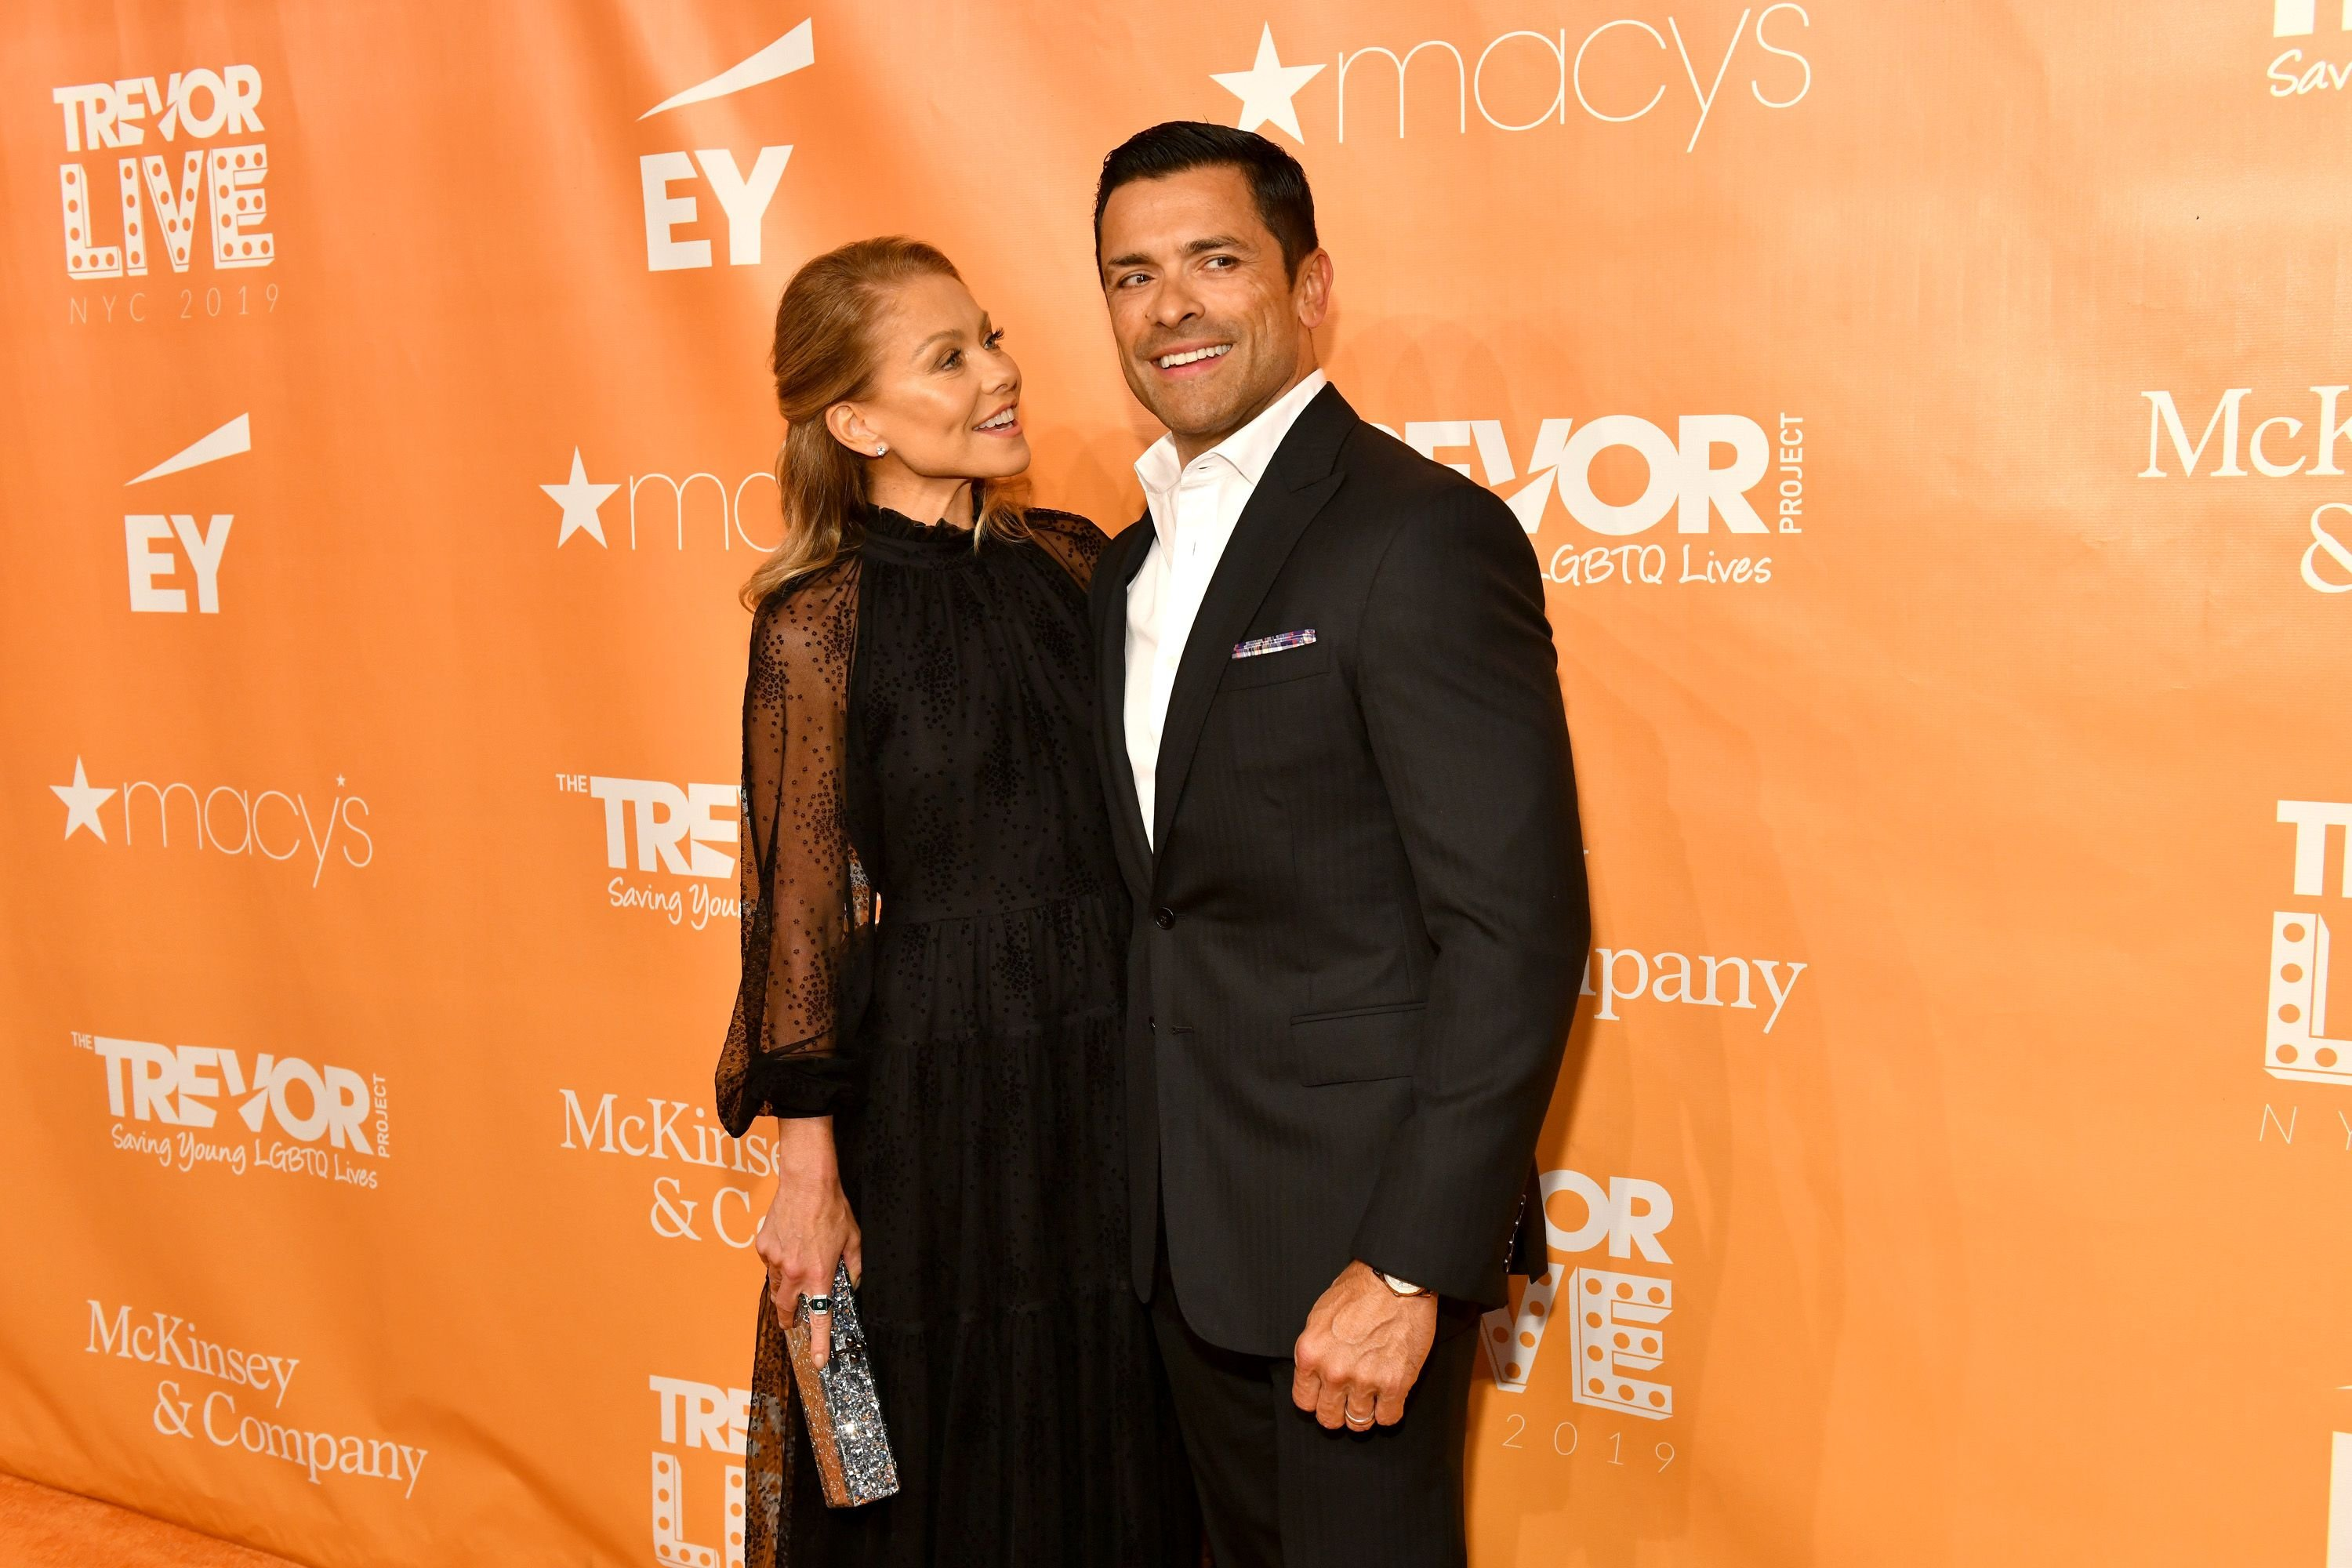 Kelly Ripa and Mark Consuelos at the TrevorLIVE New York Gala on June 17, 2019, in New York City. | Source: Getty Images